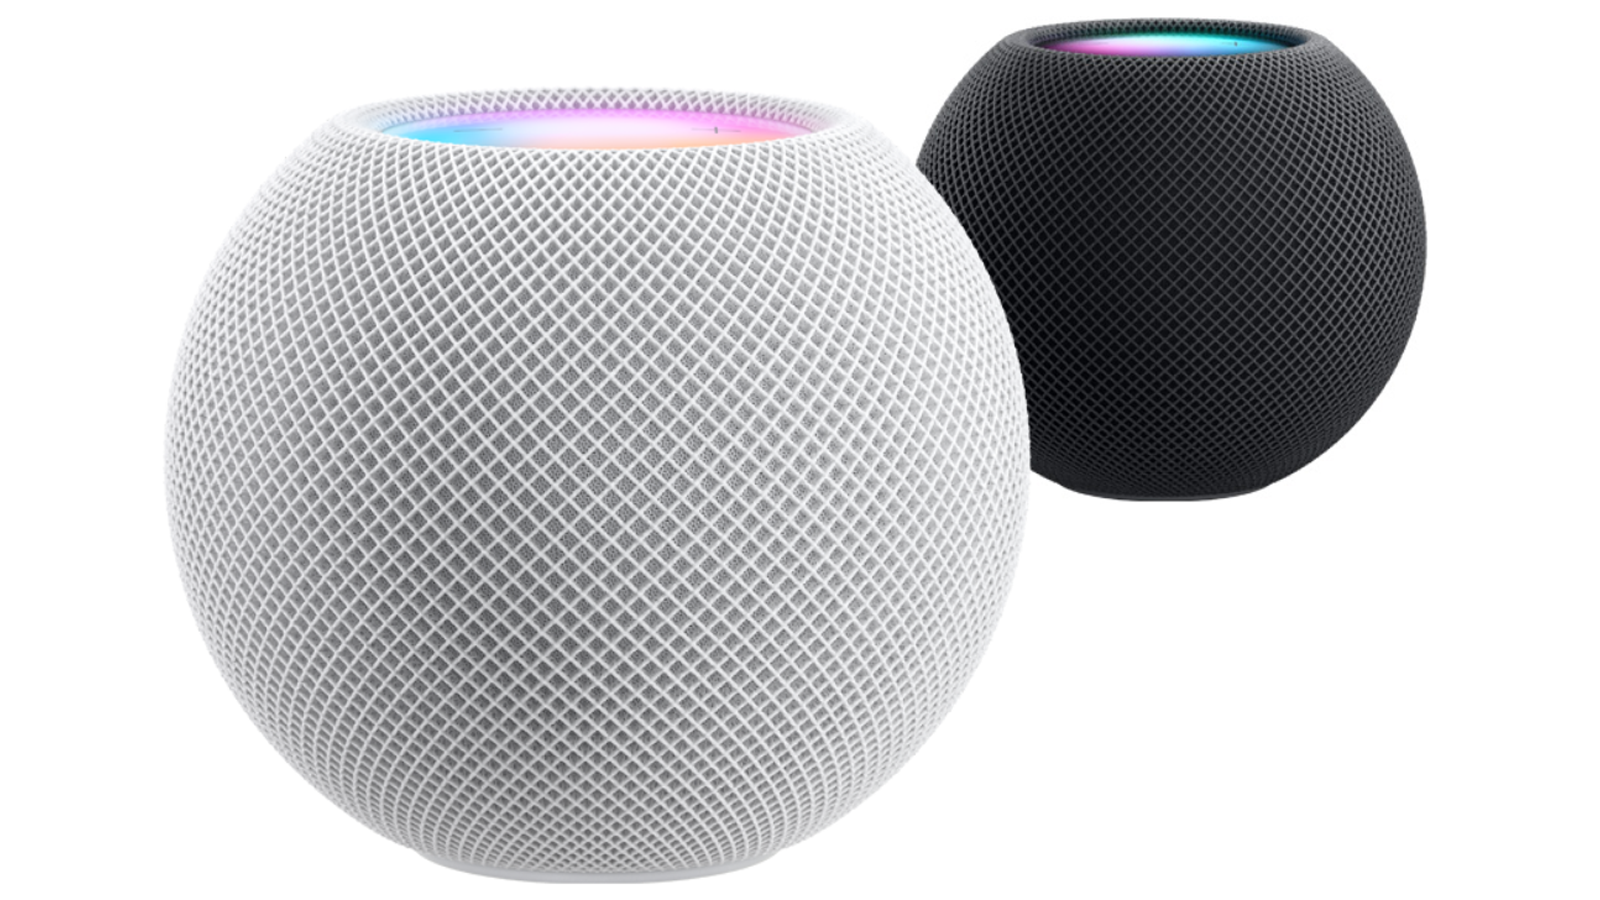 White Apple HomePod mini with black mini behind it